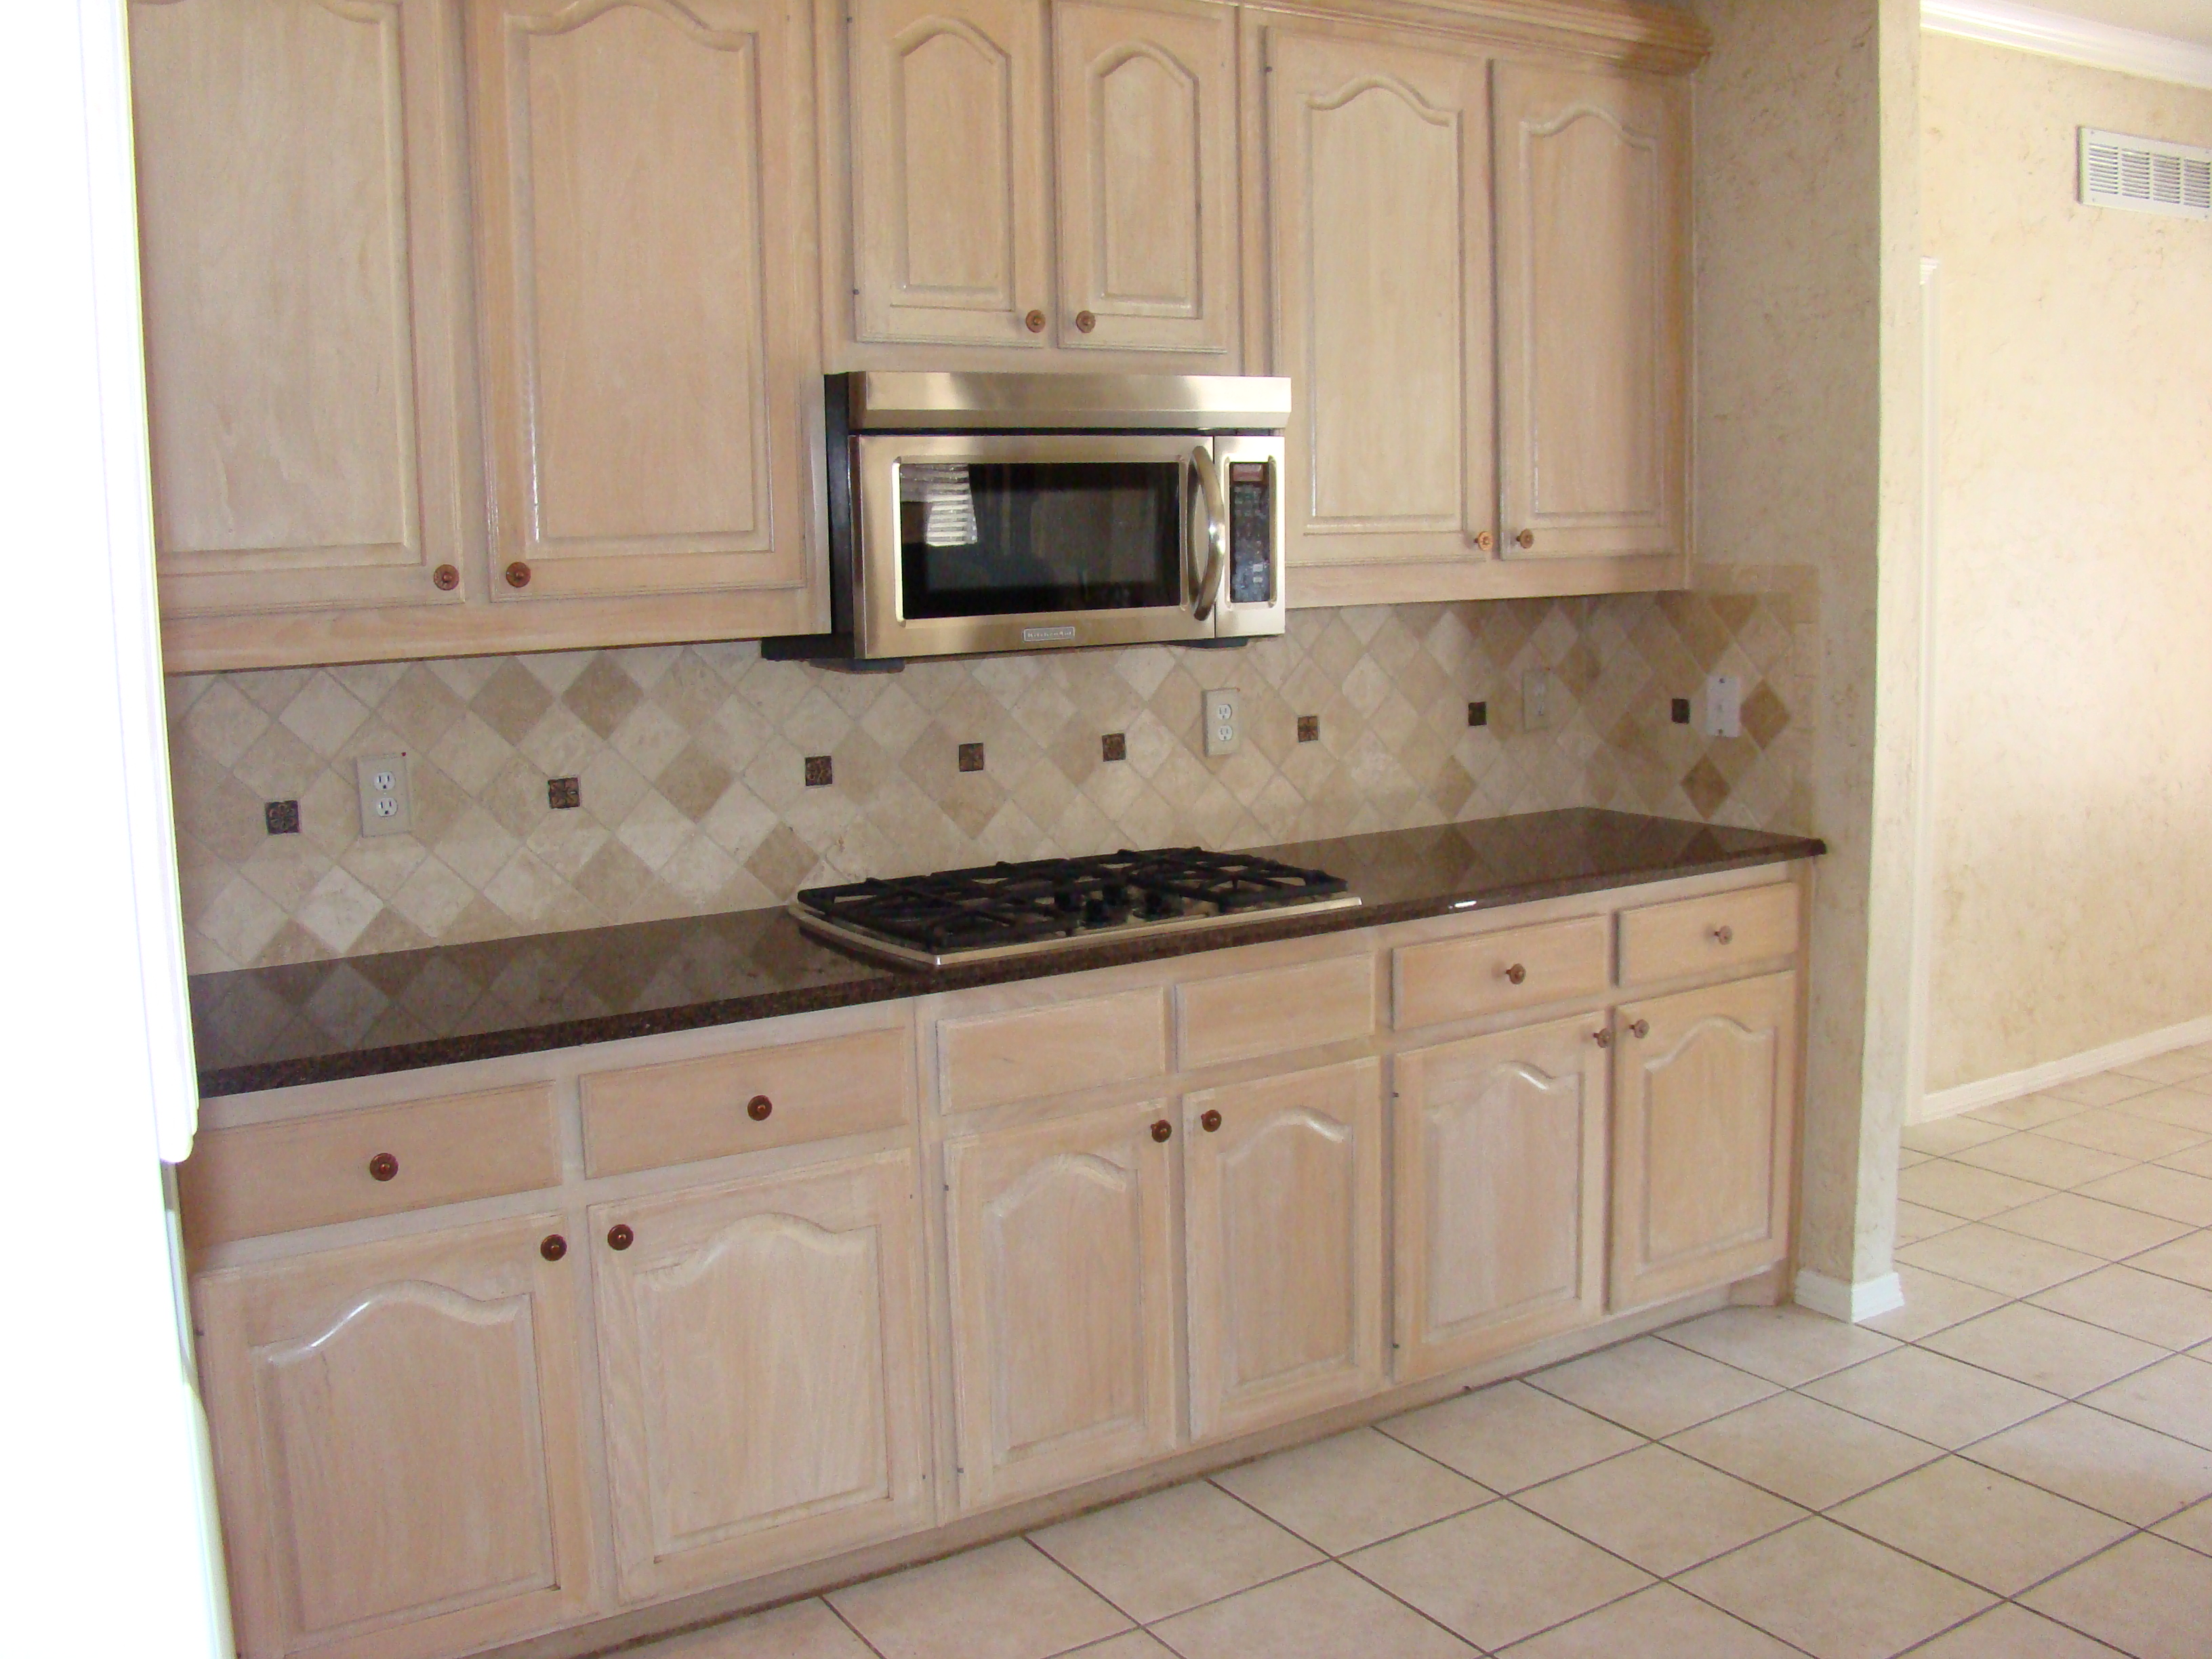 Kitchen remodel before after a nester 39 s nest for How to remodel a kitchen